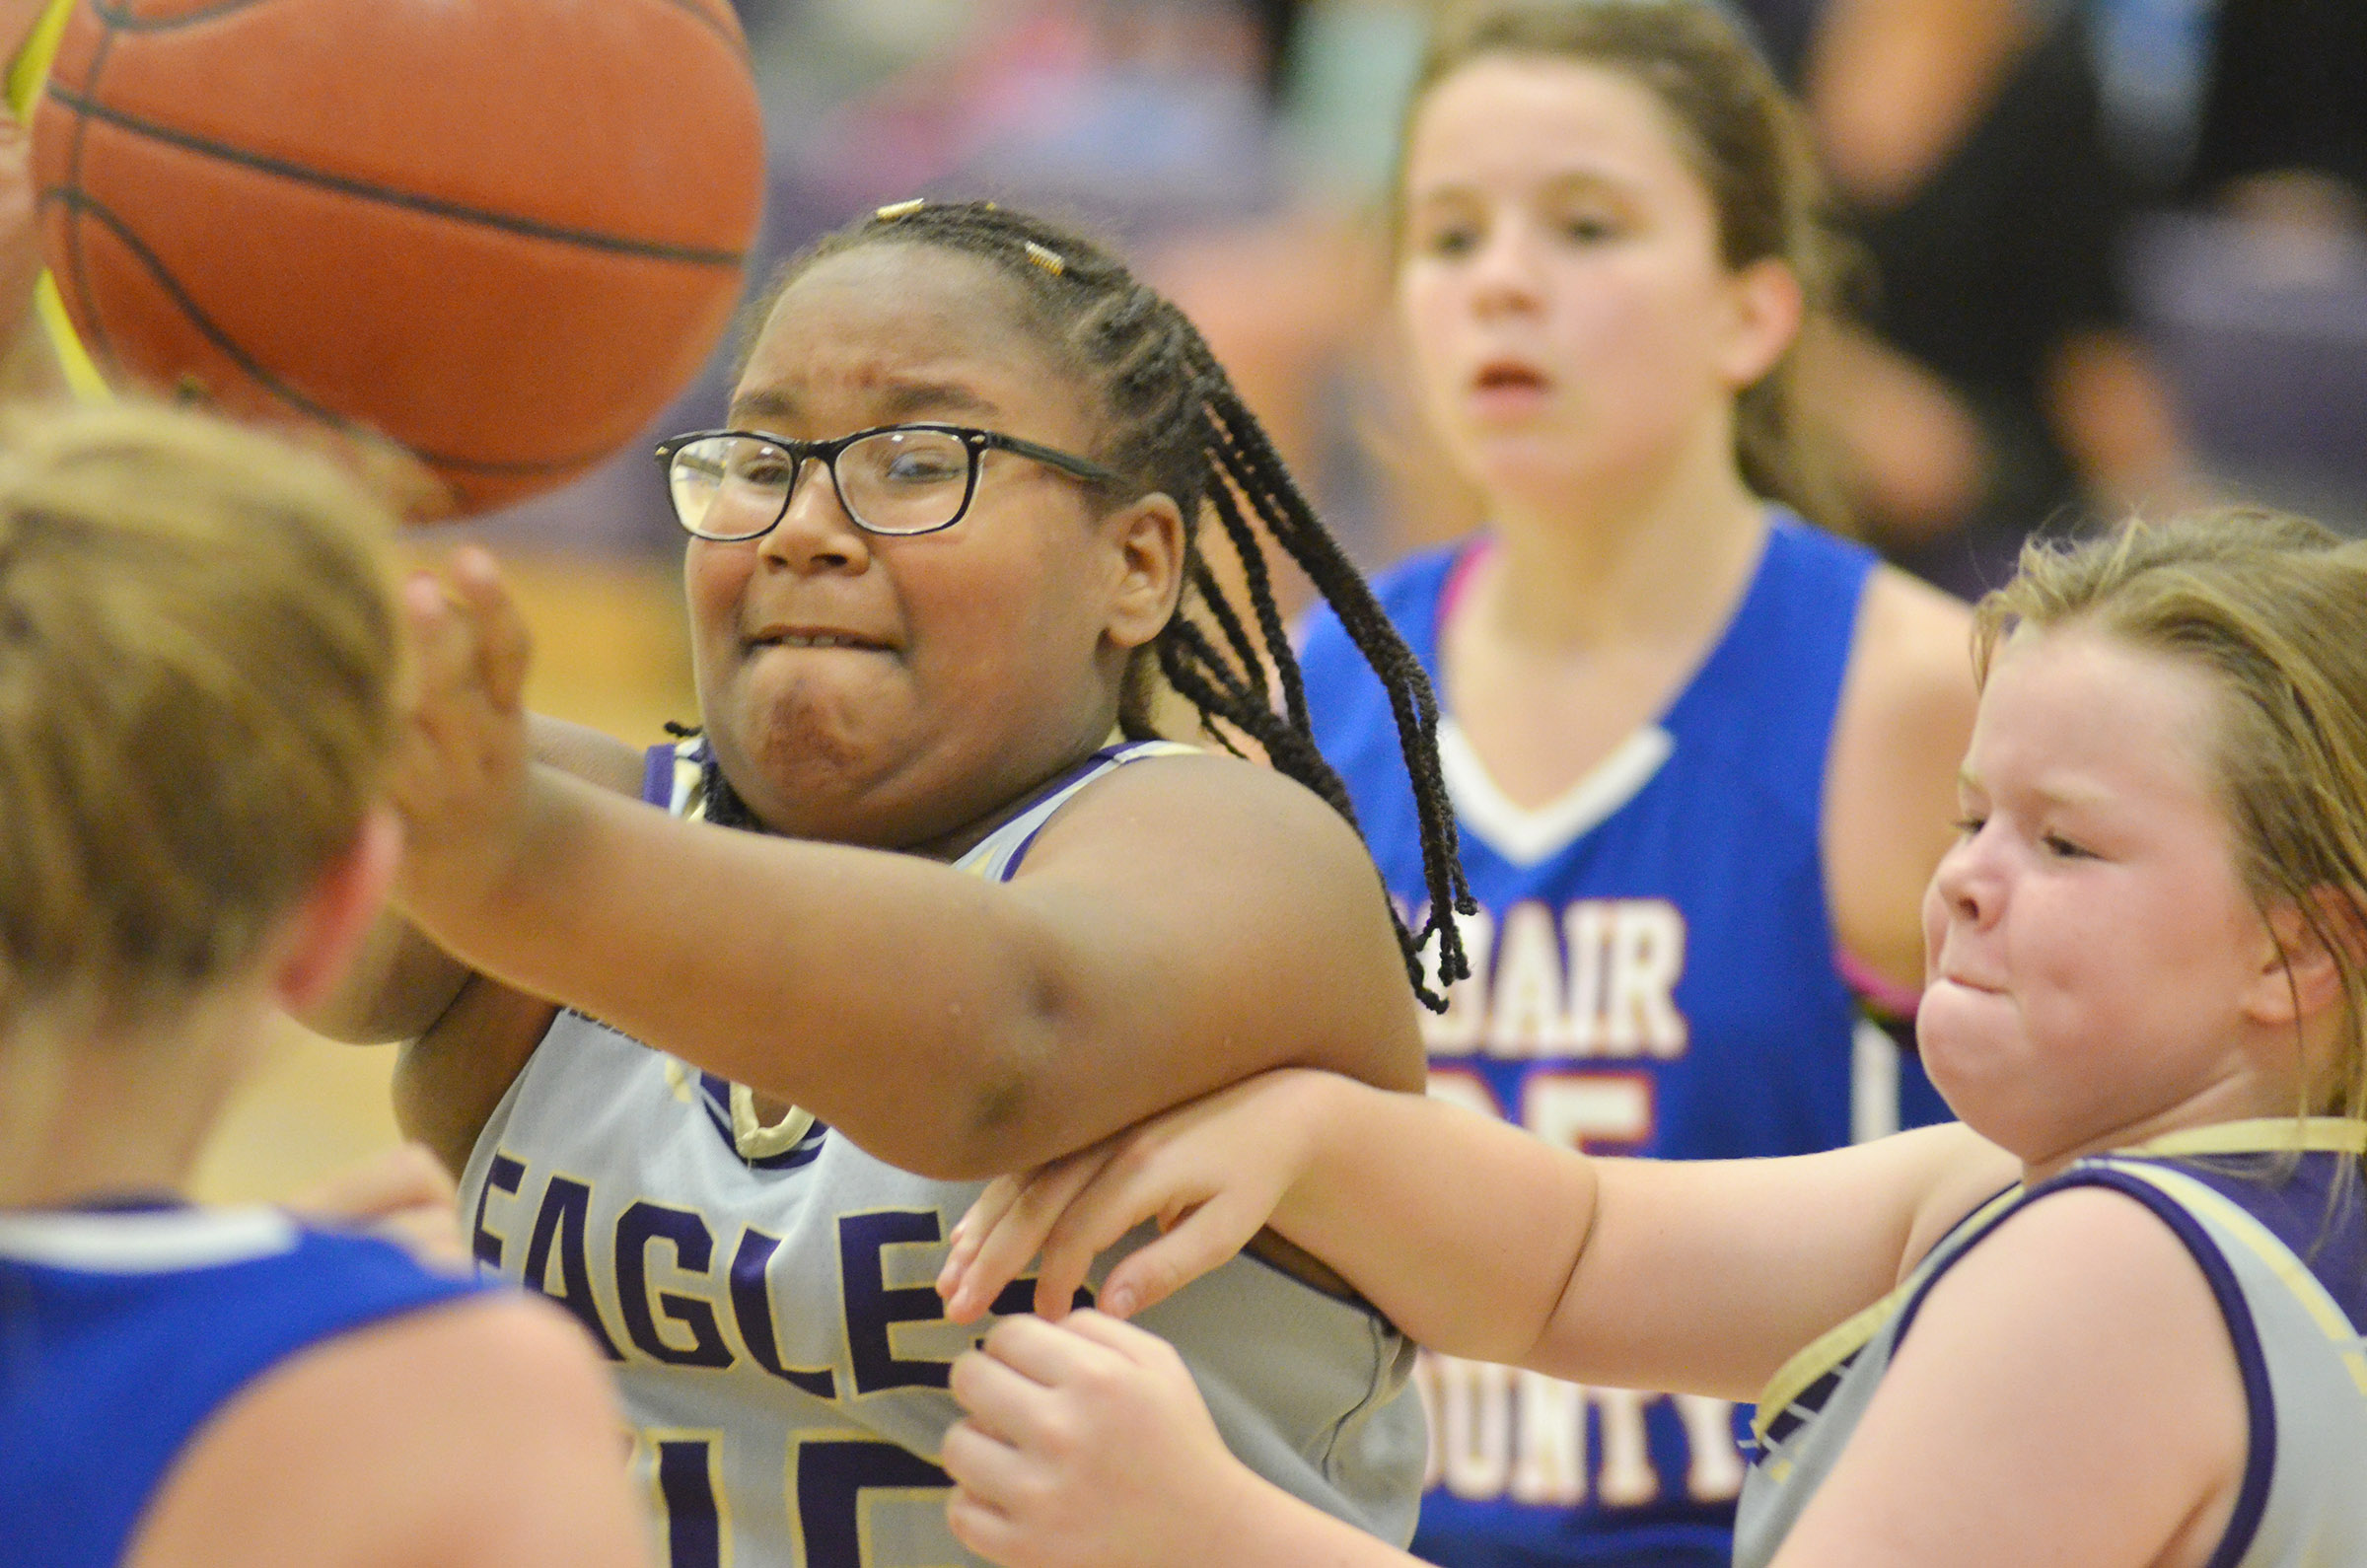 CMS sixth-grader KyAshia Mitchell, at left, and Campbellsville Elementary School fifth-grader Miley Hash battle for the ball.